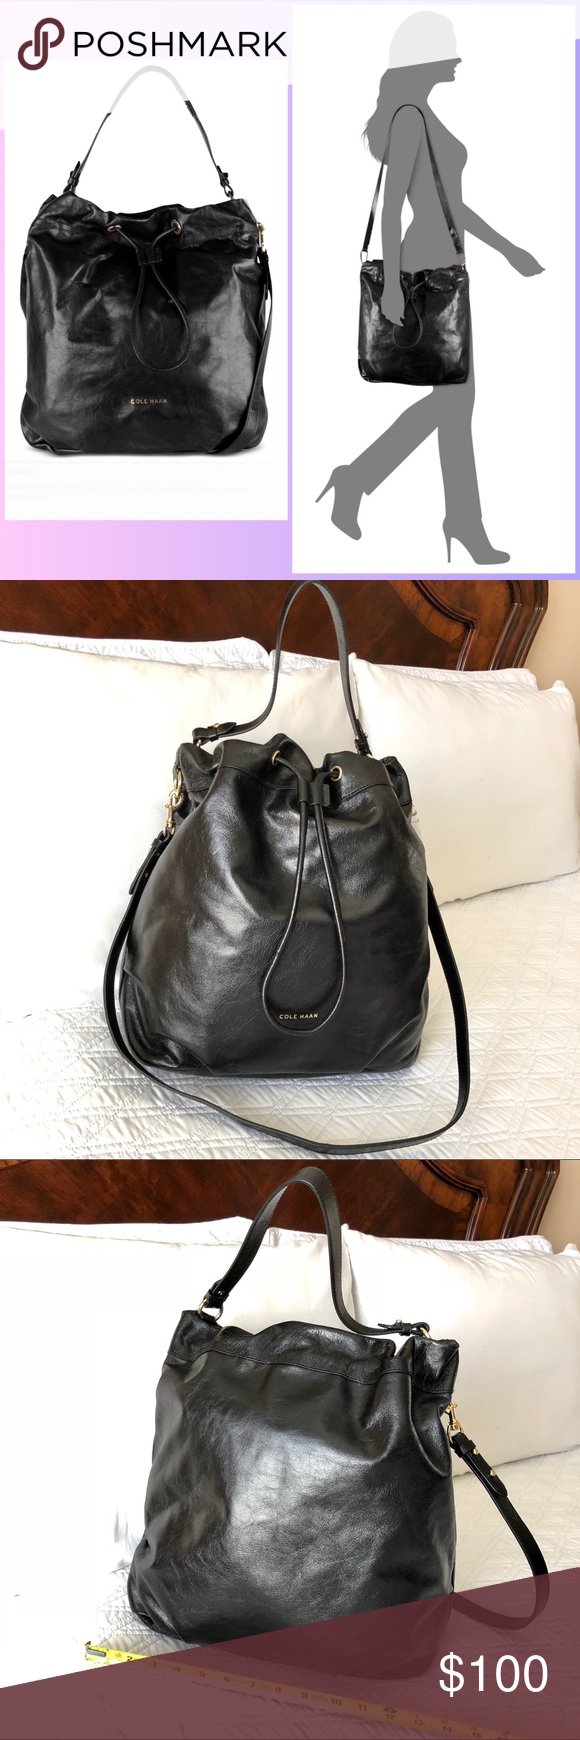 c6ba62b9d4 Authentic Cole Haan Leather Handbag Authentic! Gorgeous black leather crossbody  bag from Cole Haan.